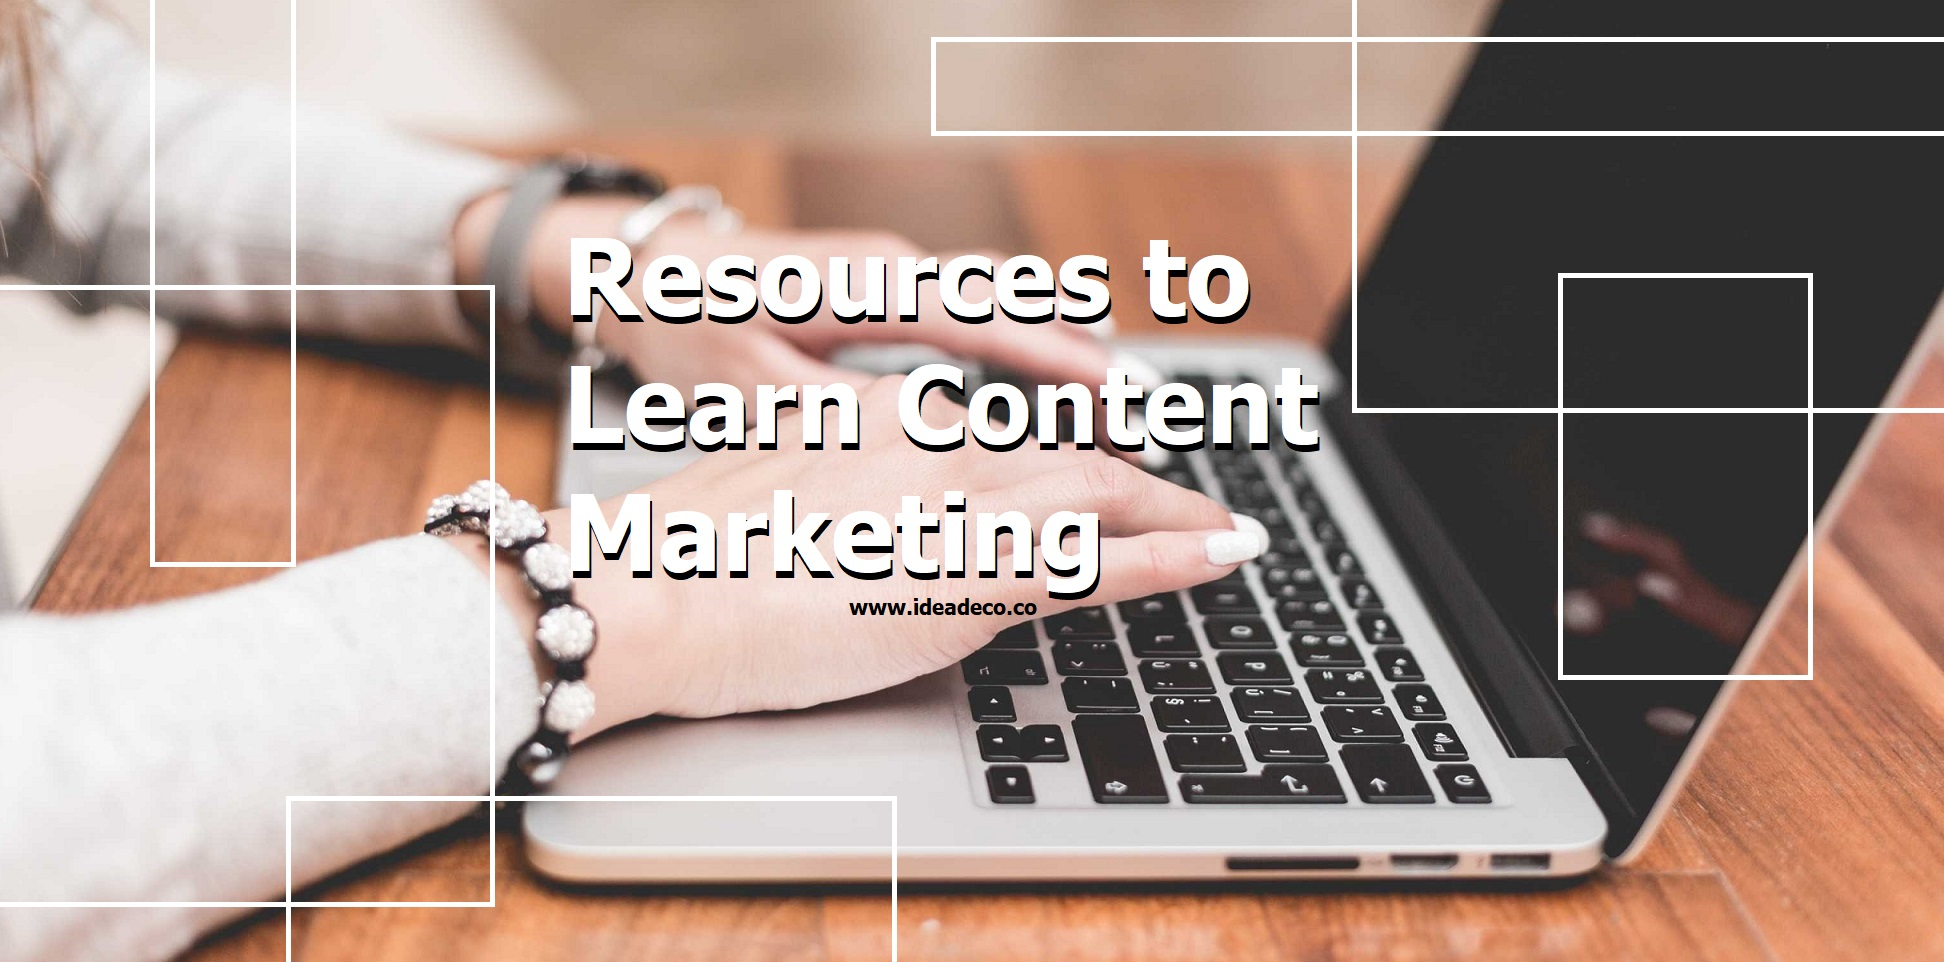 Resources to Learn Content Marketing by Areti Vassou Digital Marketing Expert